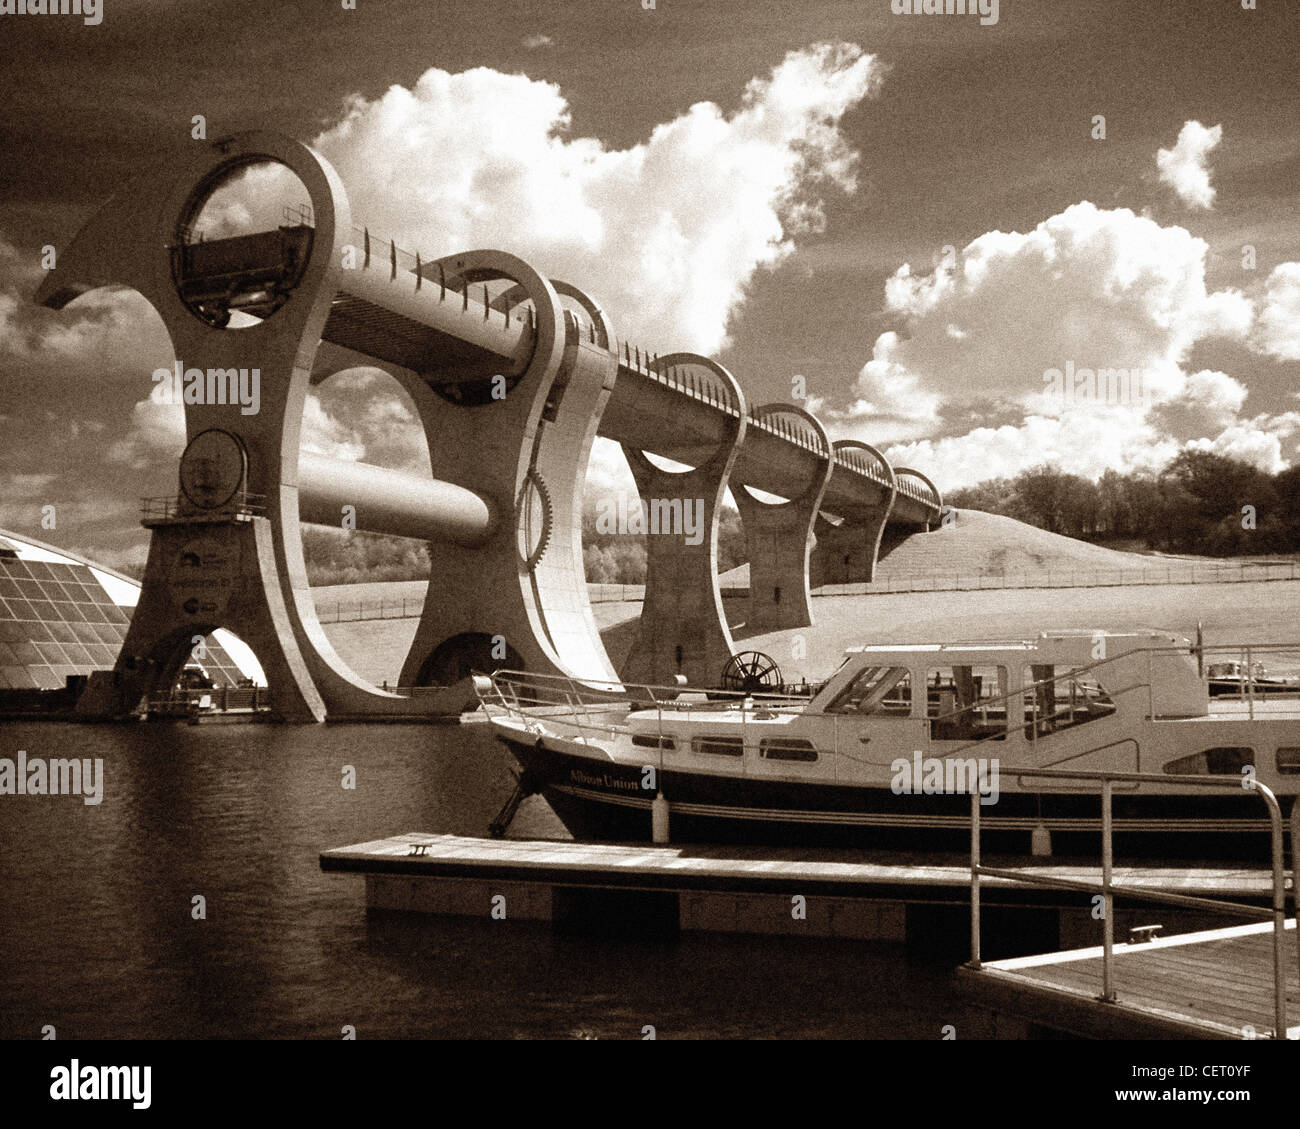 The Falkirk Wheel canal Lift, Scotland, UK @hotpixuk - Stock Image